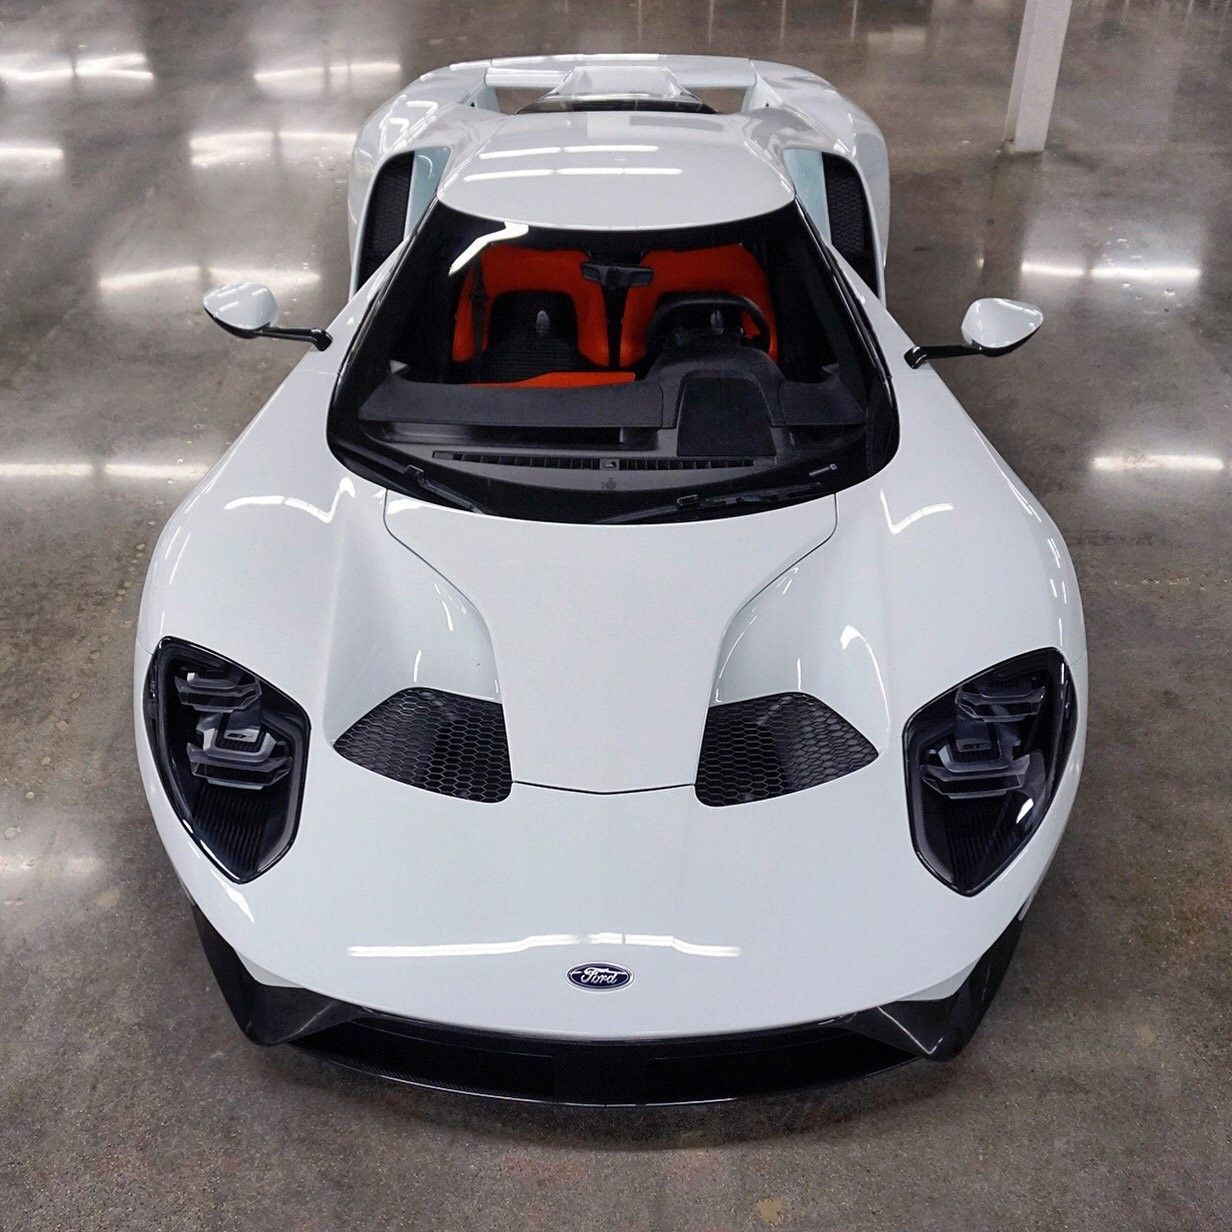 2017 Ford GT, Frozen White With Launch Control Interior